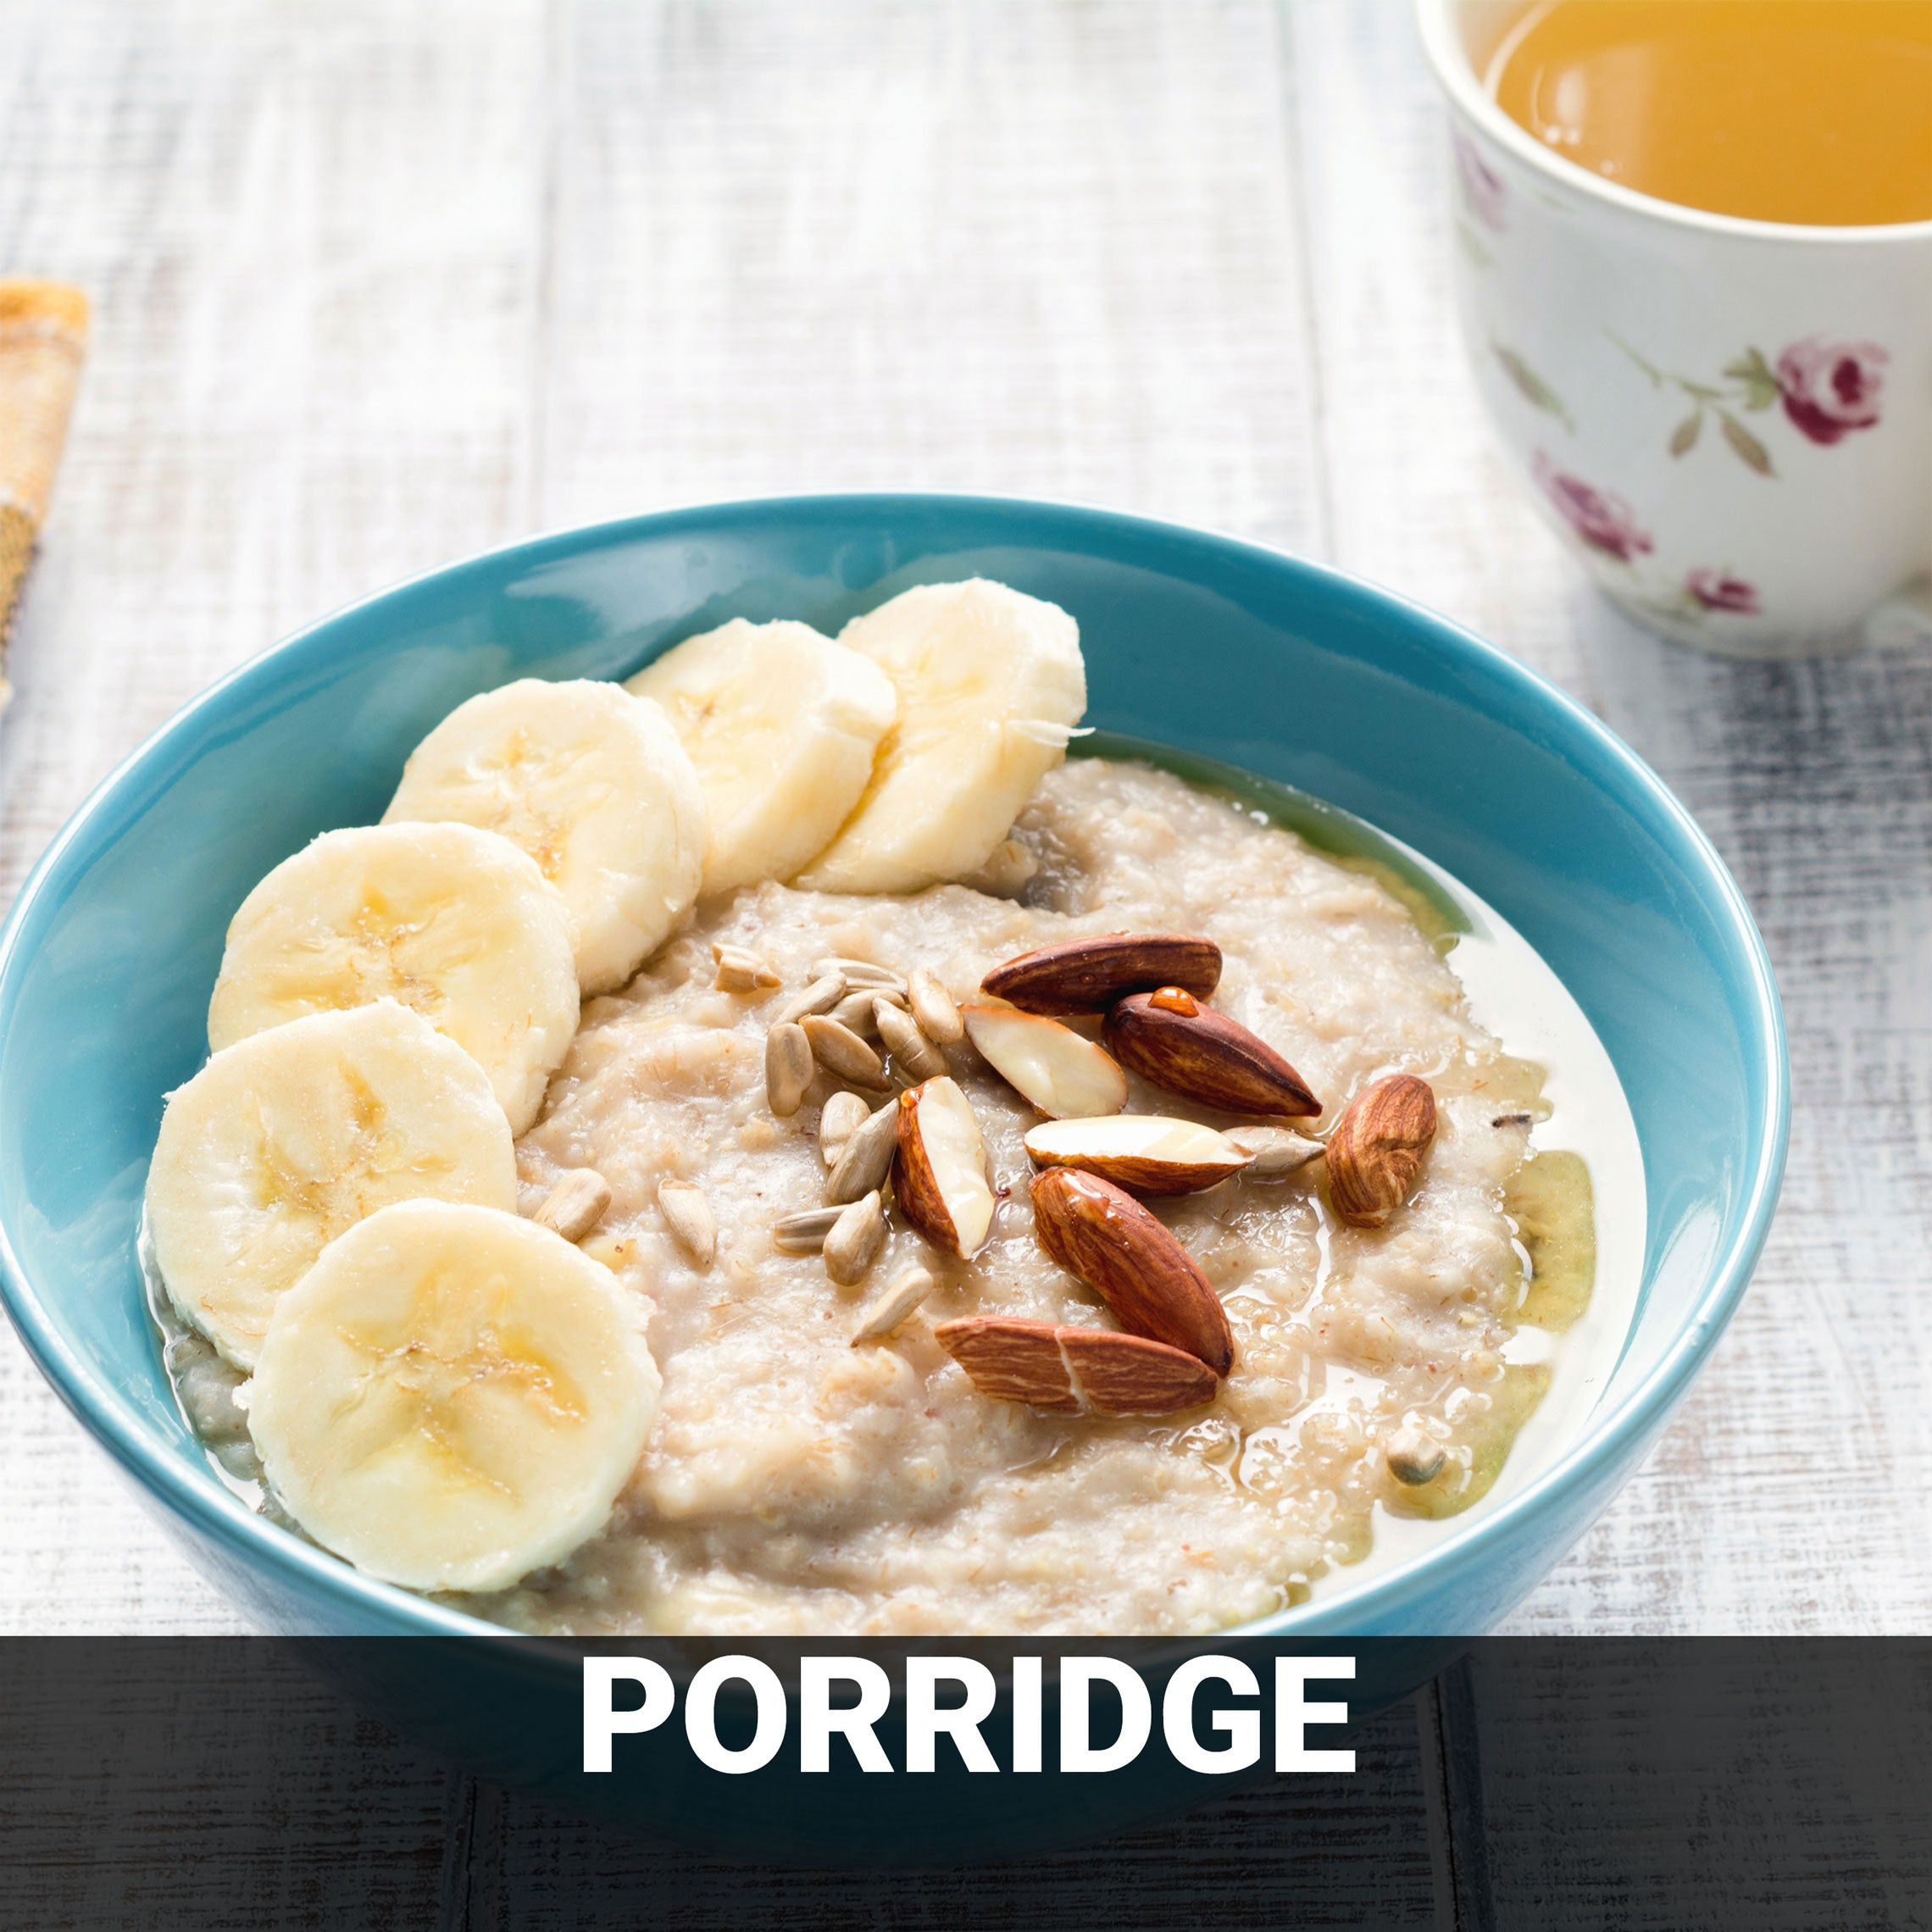 Porridge Recipe - Foods Alive